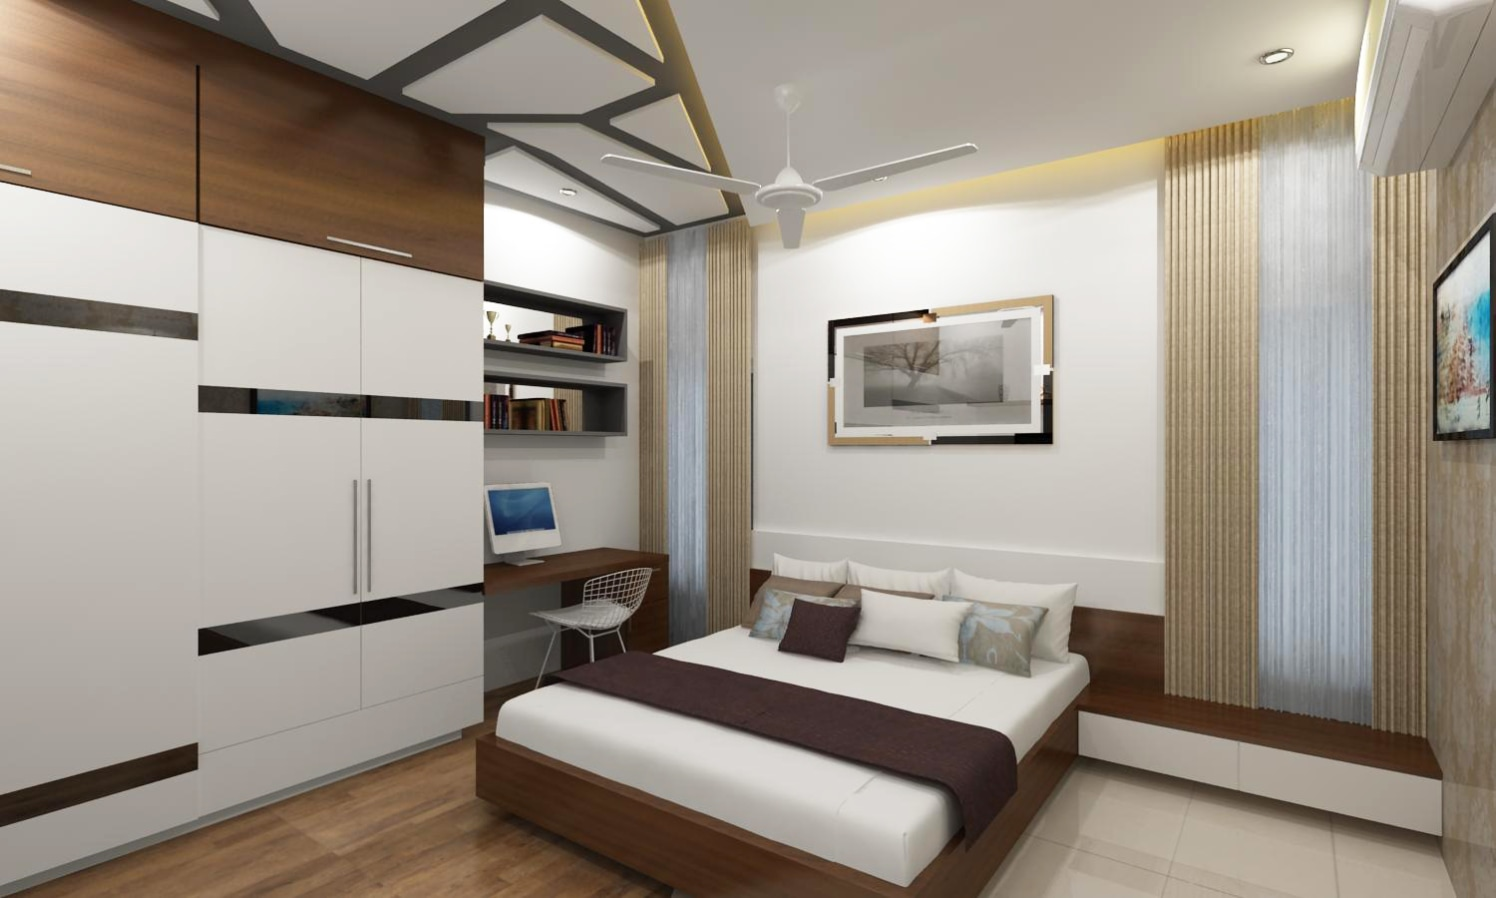 Bedroom with wardrobe and study space by Adroit Design - Architectural - interior Bedroom Contemporary | Interior Design Photos & Ideas